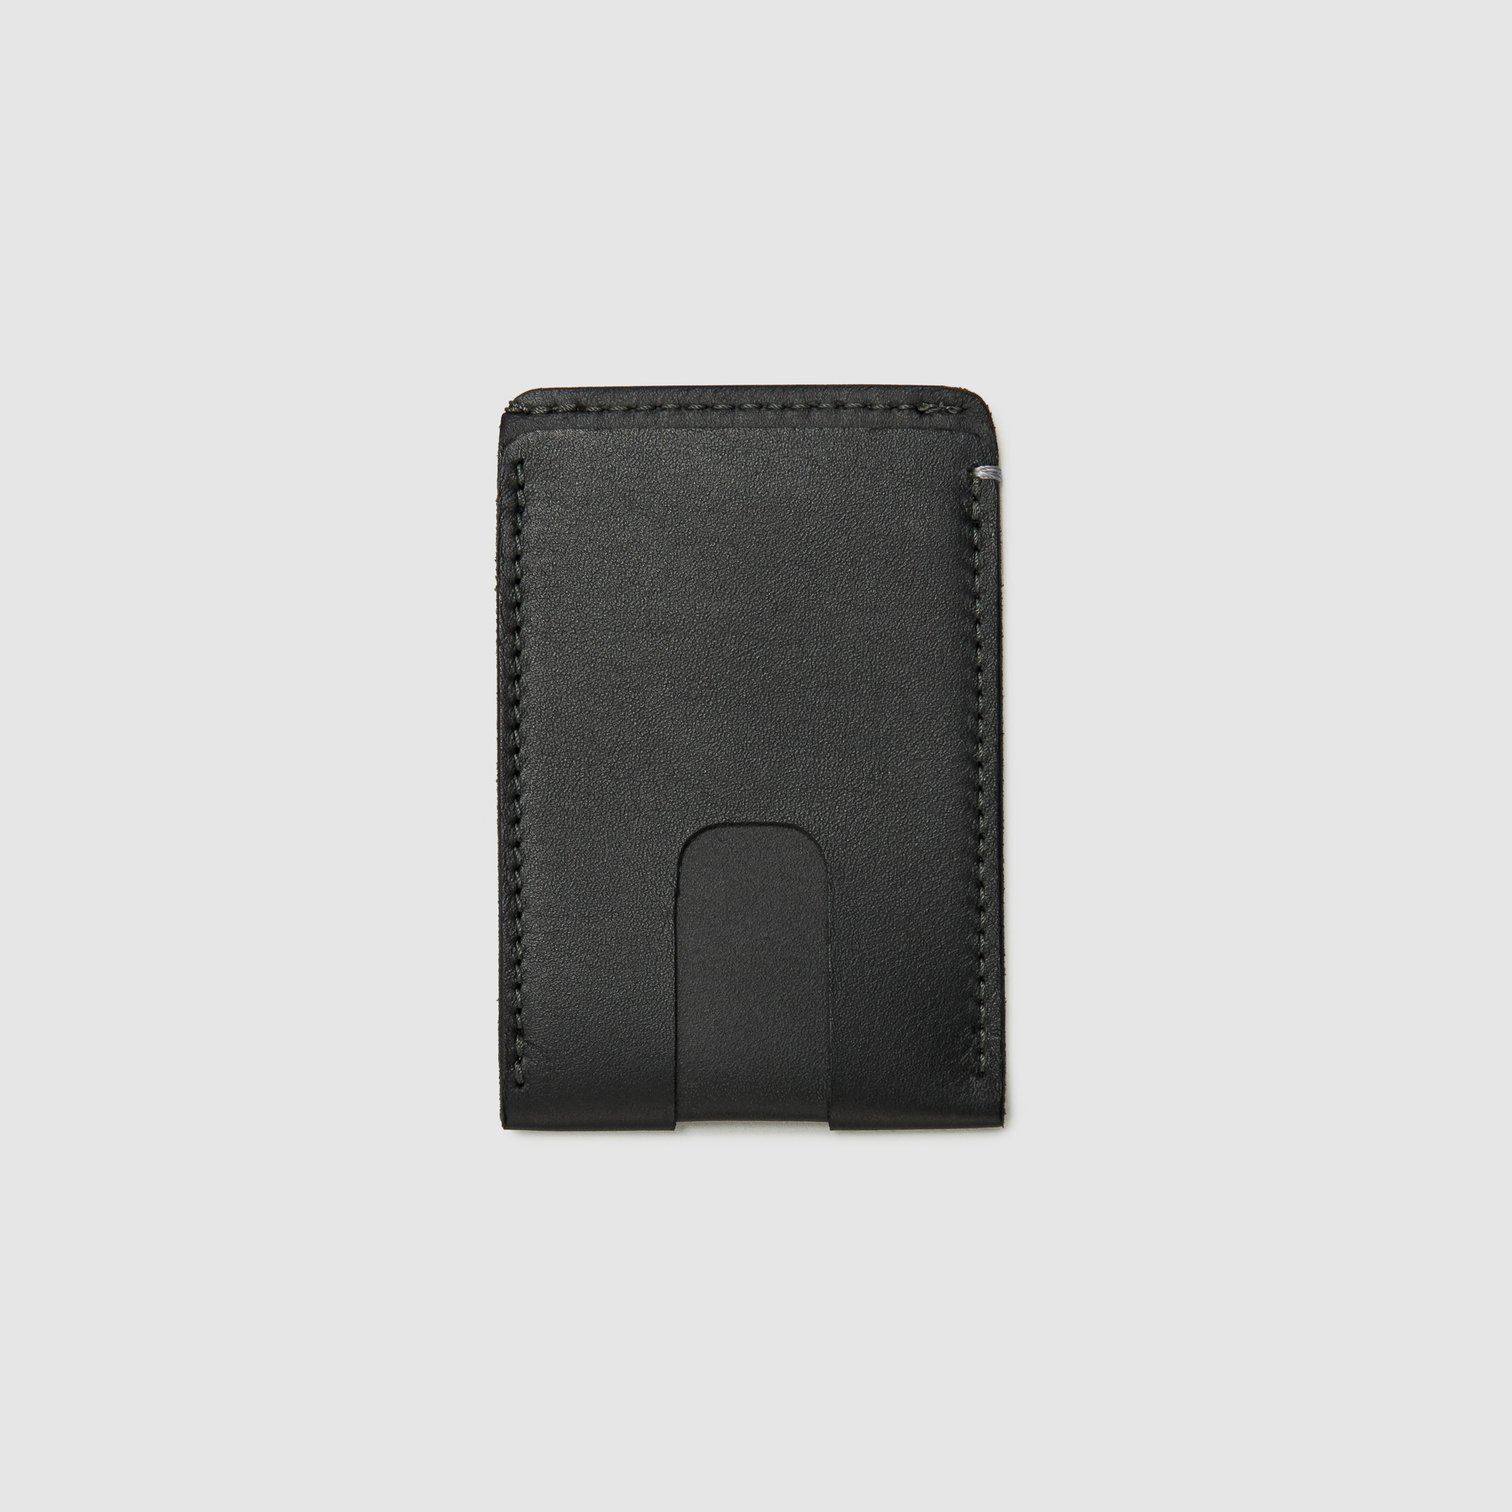 Anson Calder Card Wallet with Cash Pocket